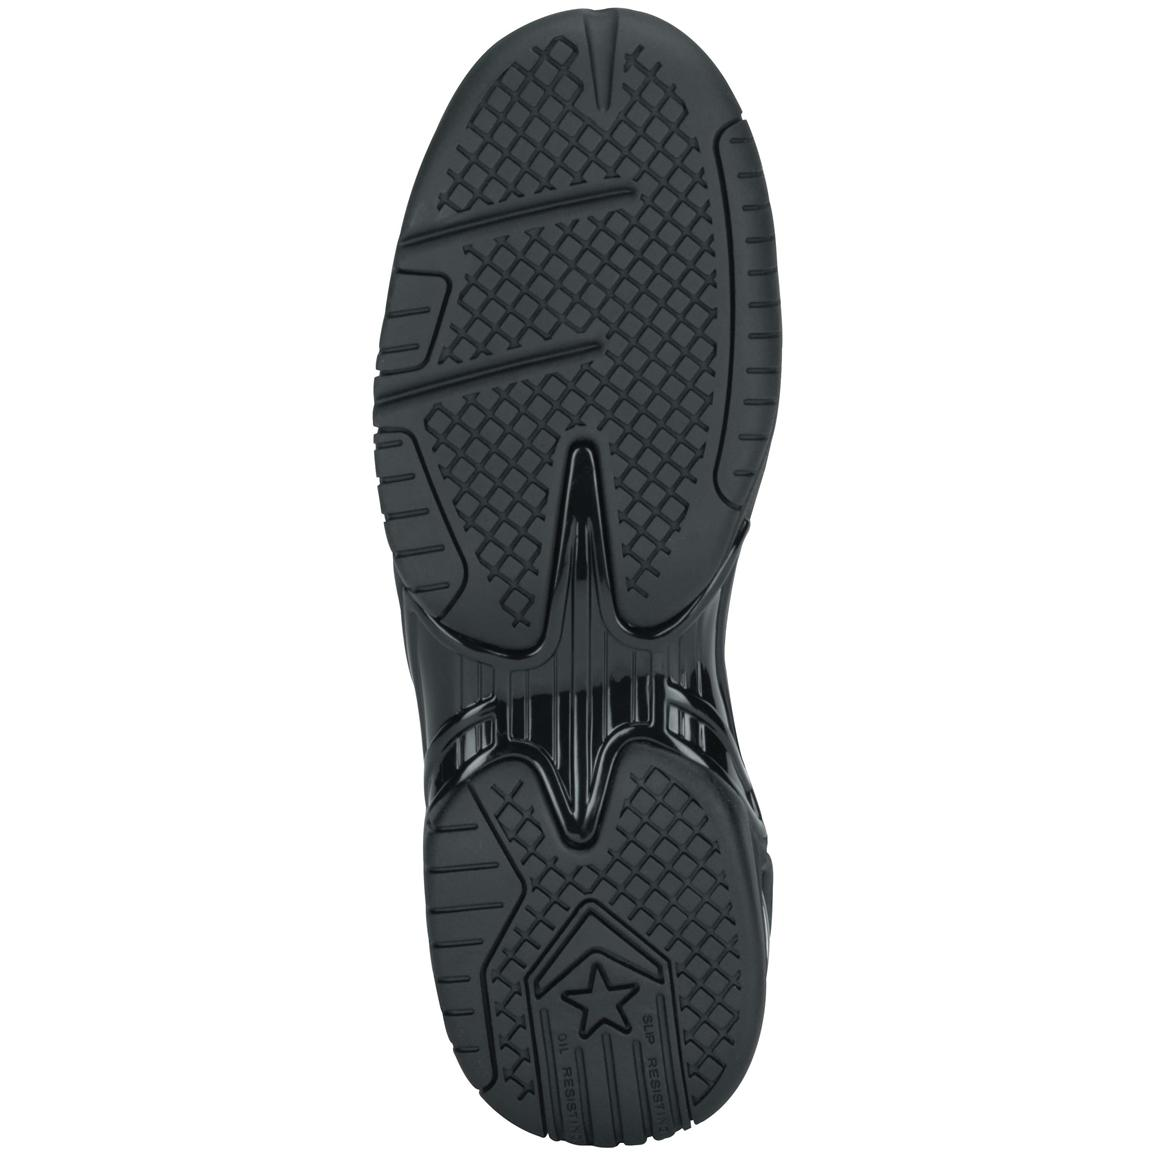 Dual density rubber outsole